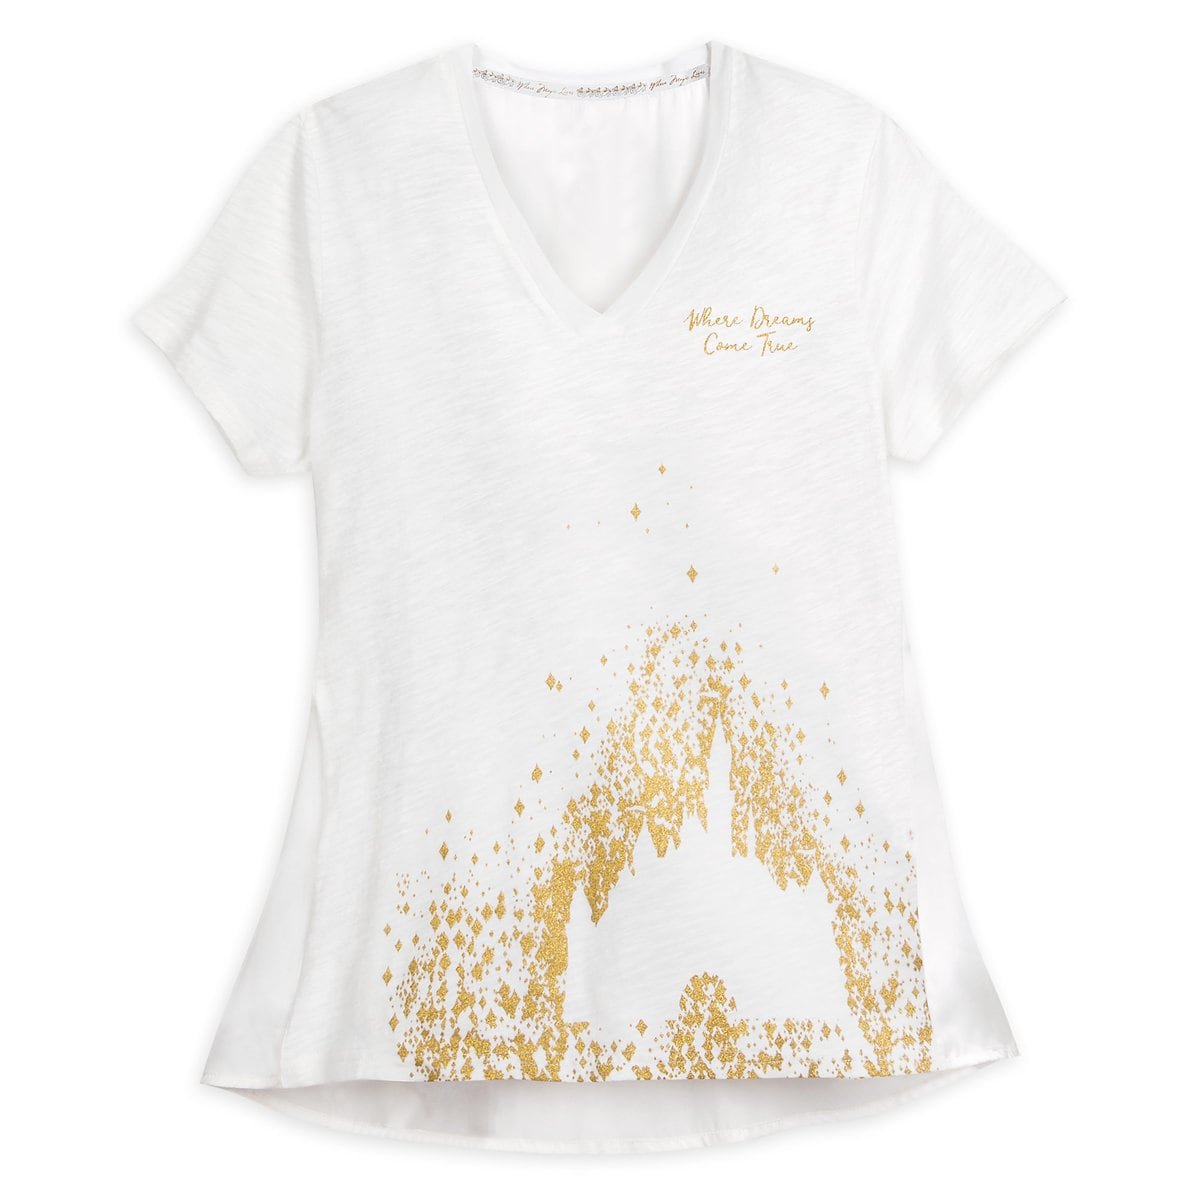 8ada17b8 Product Image of Sleeping Beauty Castle T-Shirt for Women - Disneyland # 1